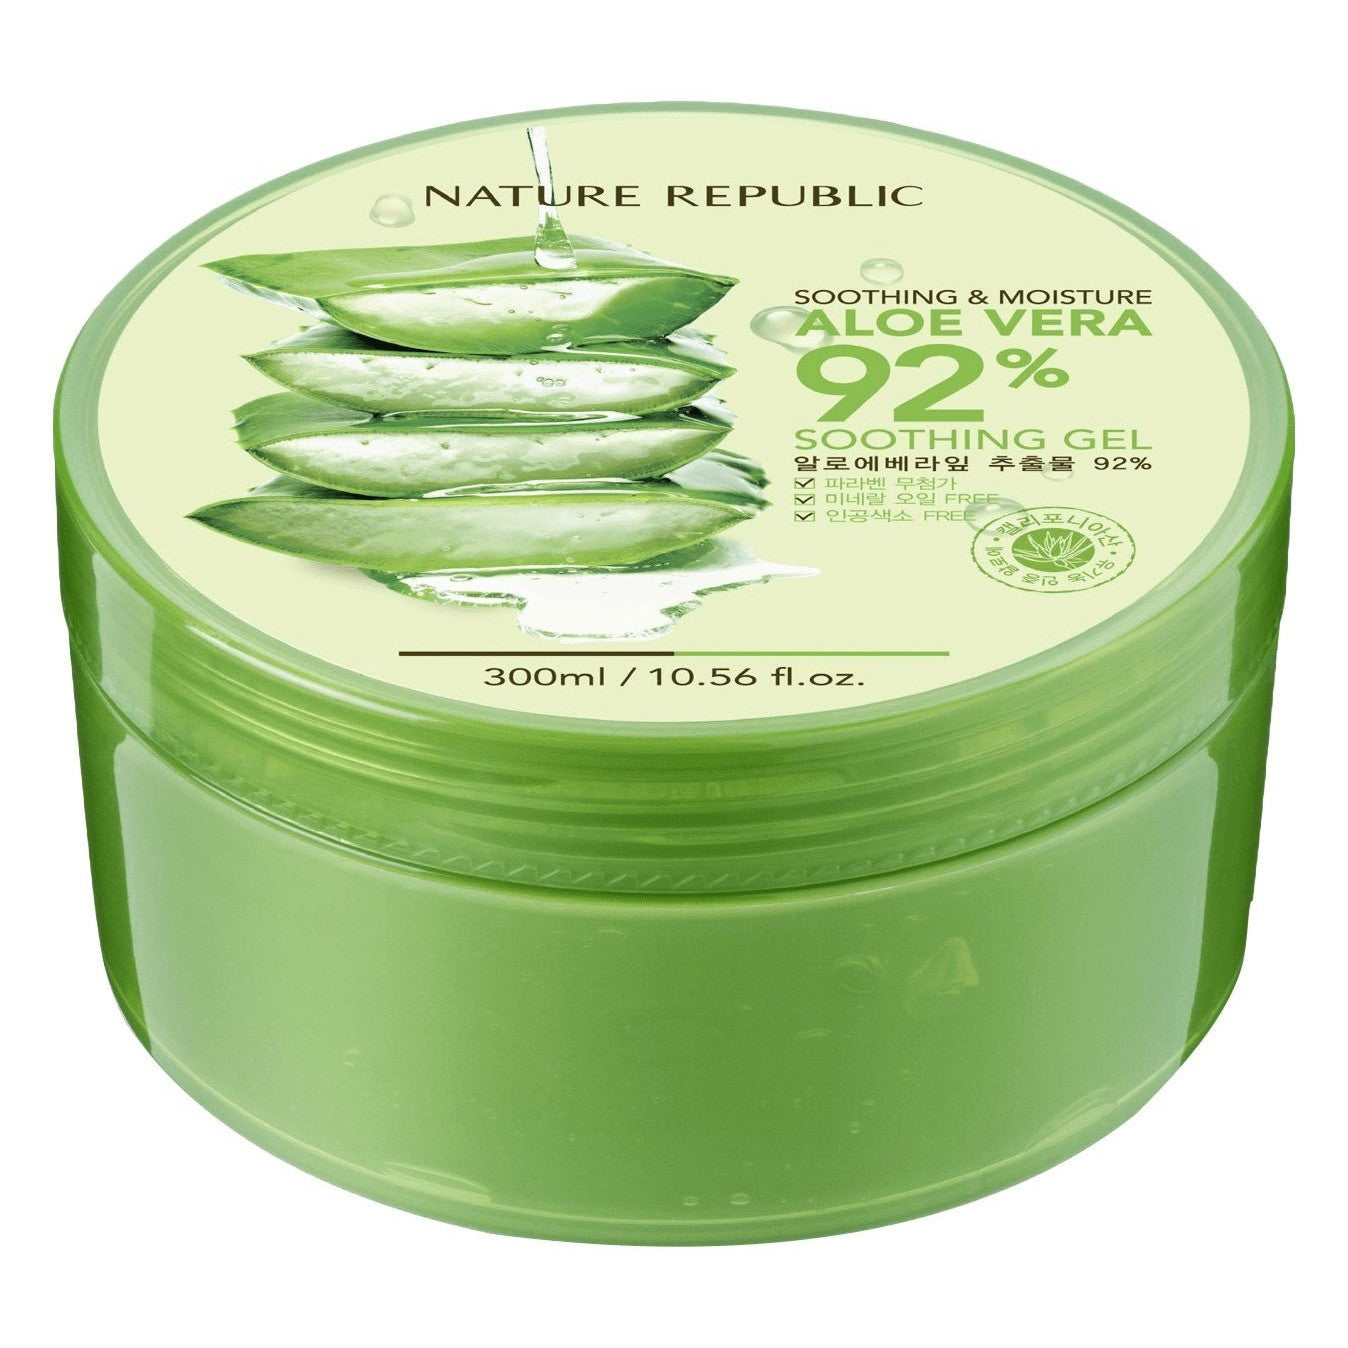 NATUR REPUBLIC Shooting & Moisture Aloe Vera 92% Soothing Gel (250 mL)